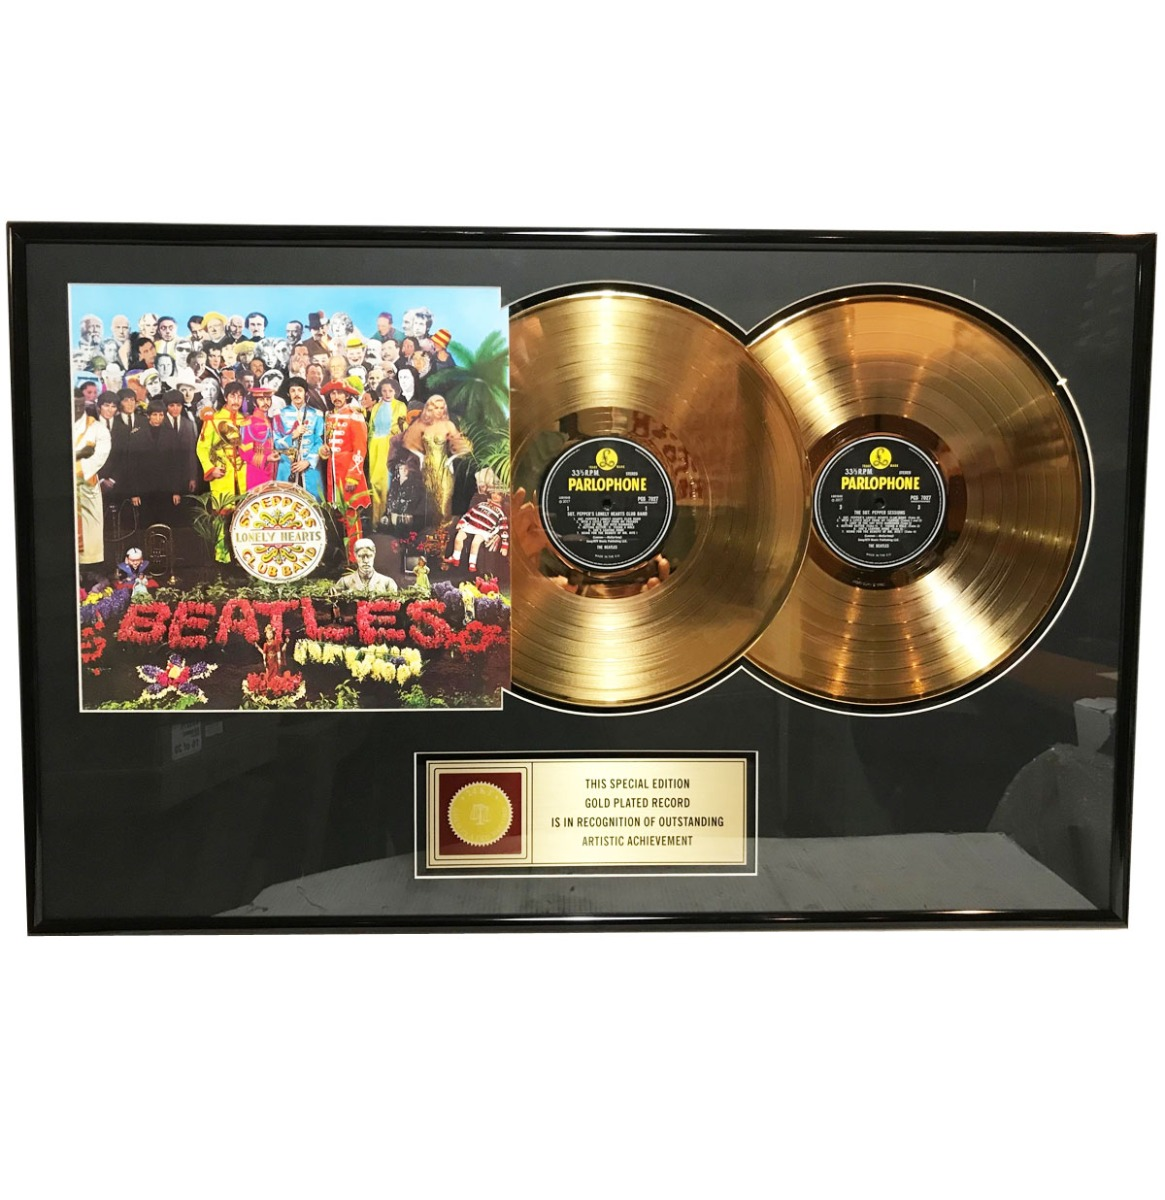 The Beatles - Sgt Peppers Lonely Hearts Club Band 24 KT Gouden Plaat 2LP